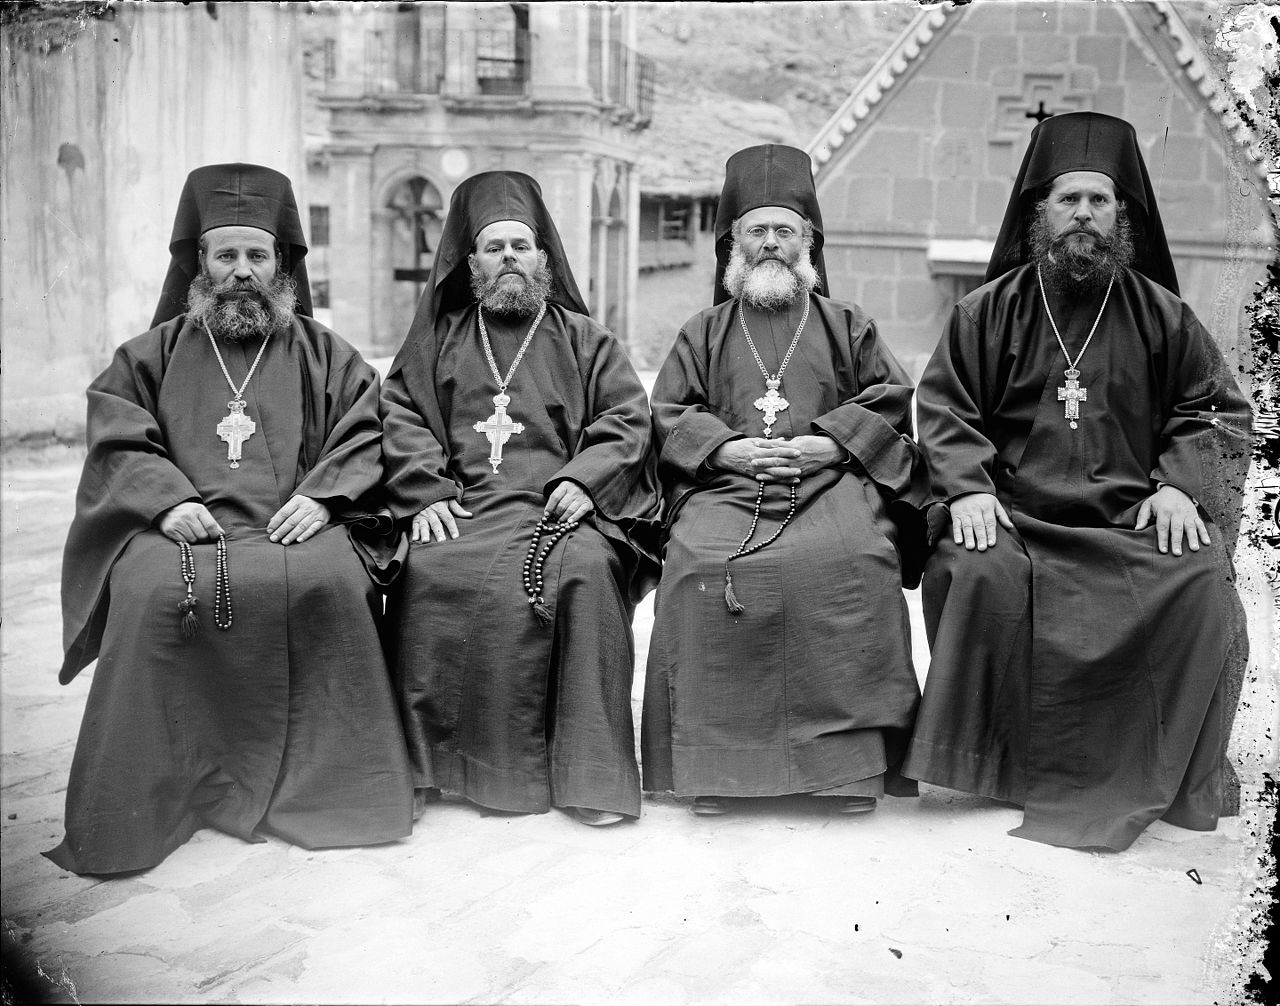 Greek Orthodox priests at St. Catherine's Monastery in the Sinai.jpg